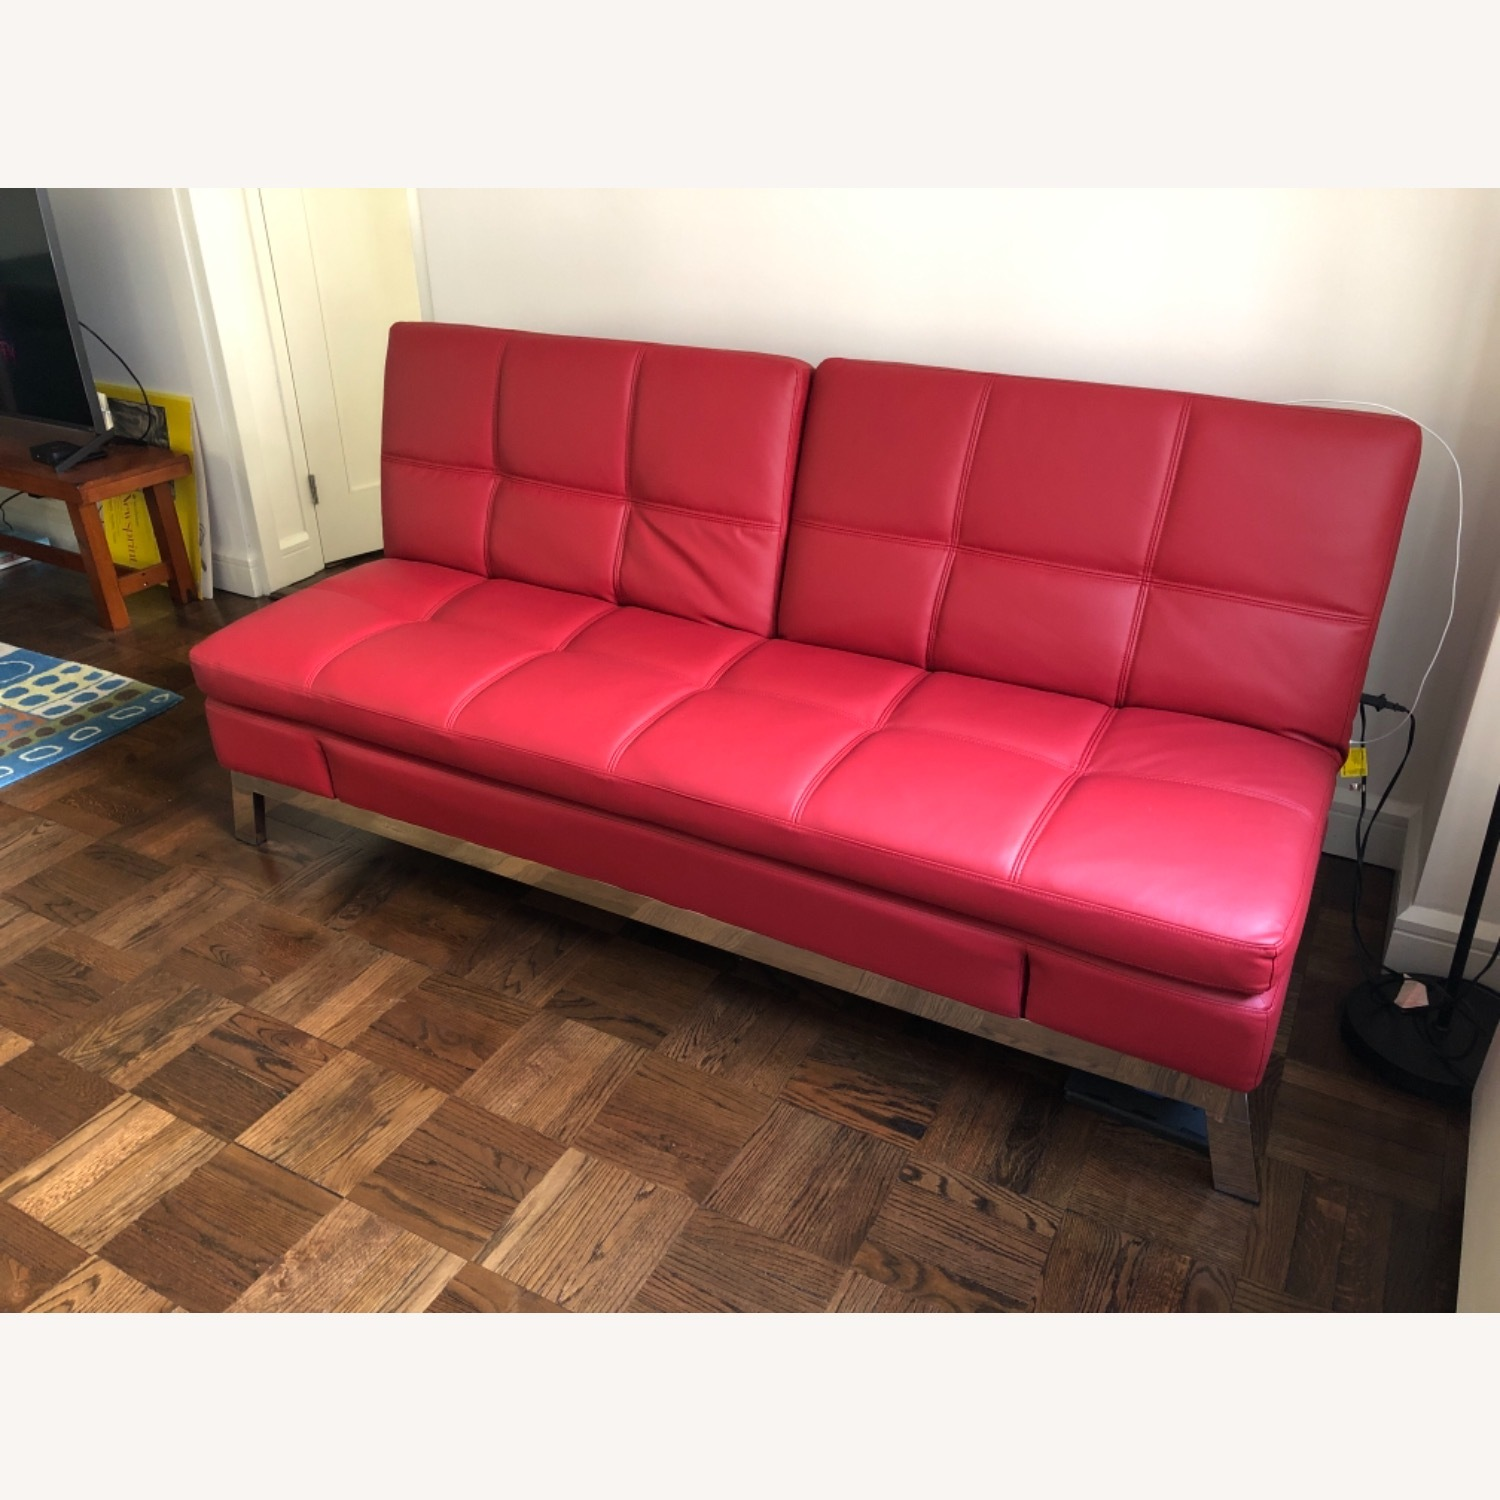 Coddle Red Leather Convertible Couch - image-1